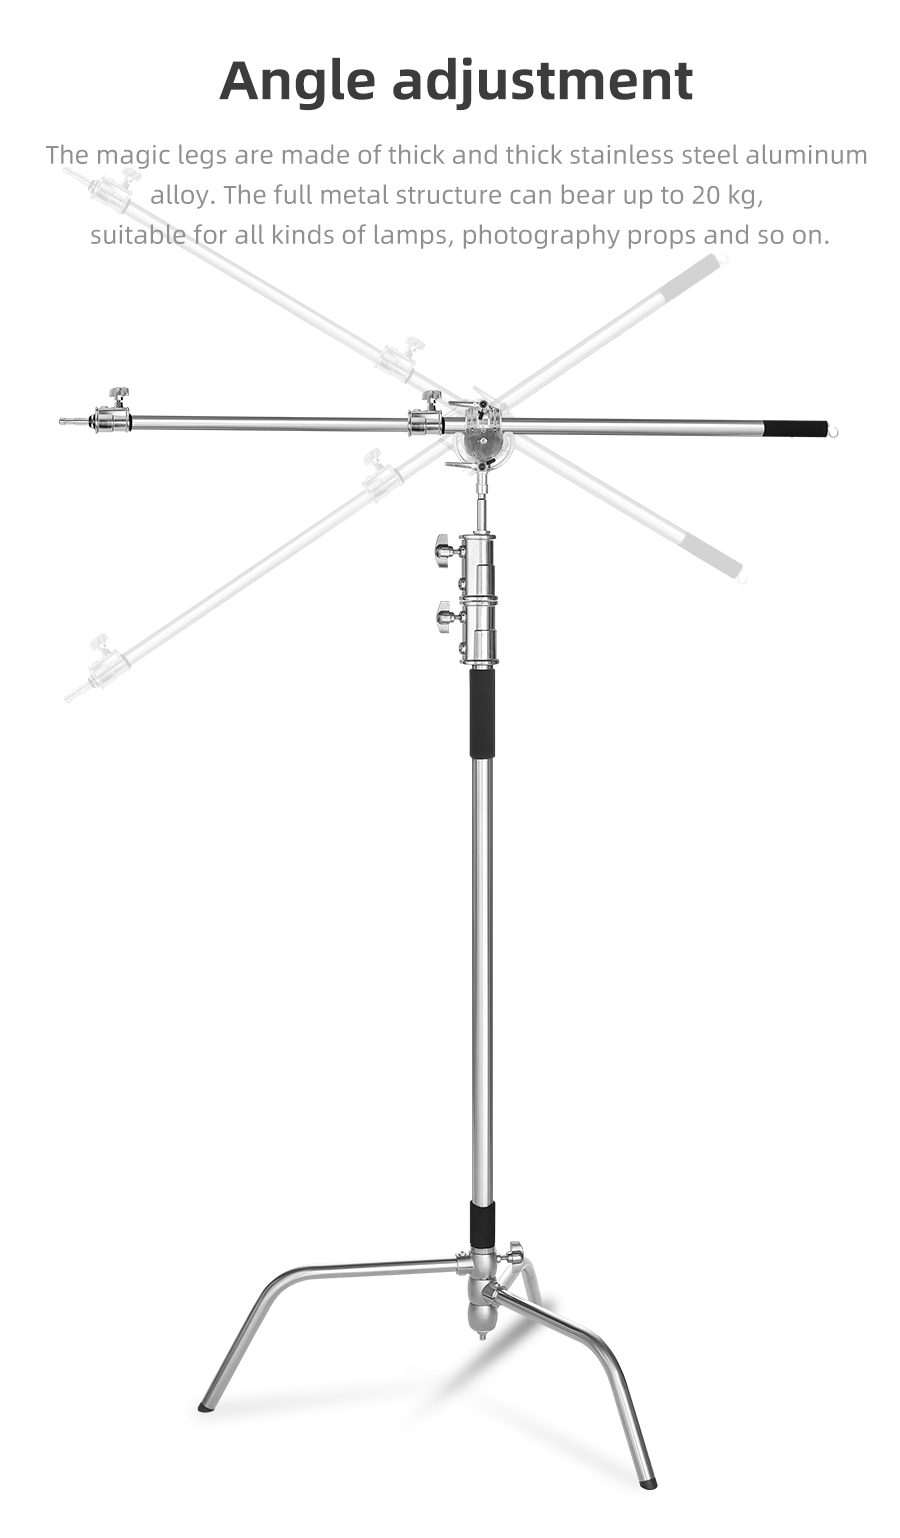 Metal Max Height 330cm Adjustable Reflector Stand with 95-230cm Holding Boom Arm for Photography Studio Video Flash, Monolight